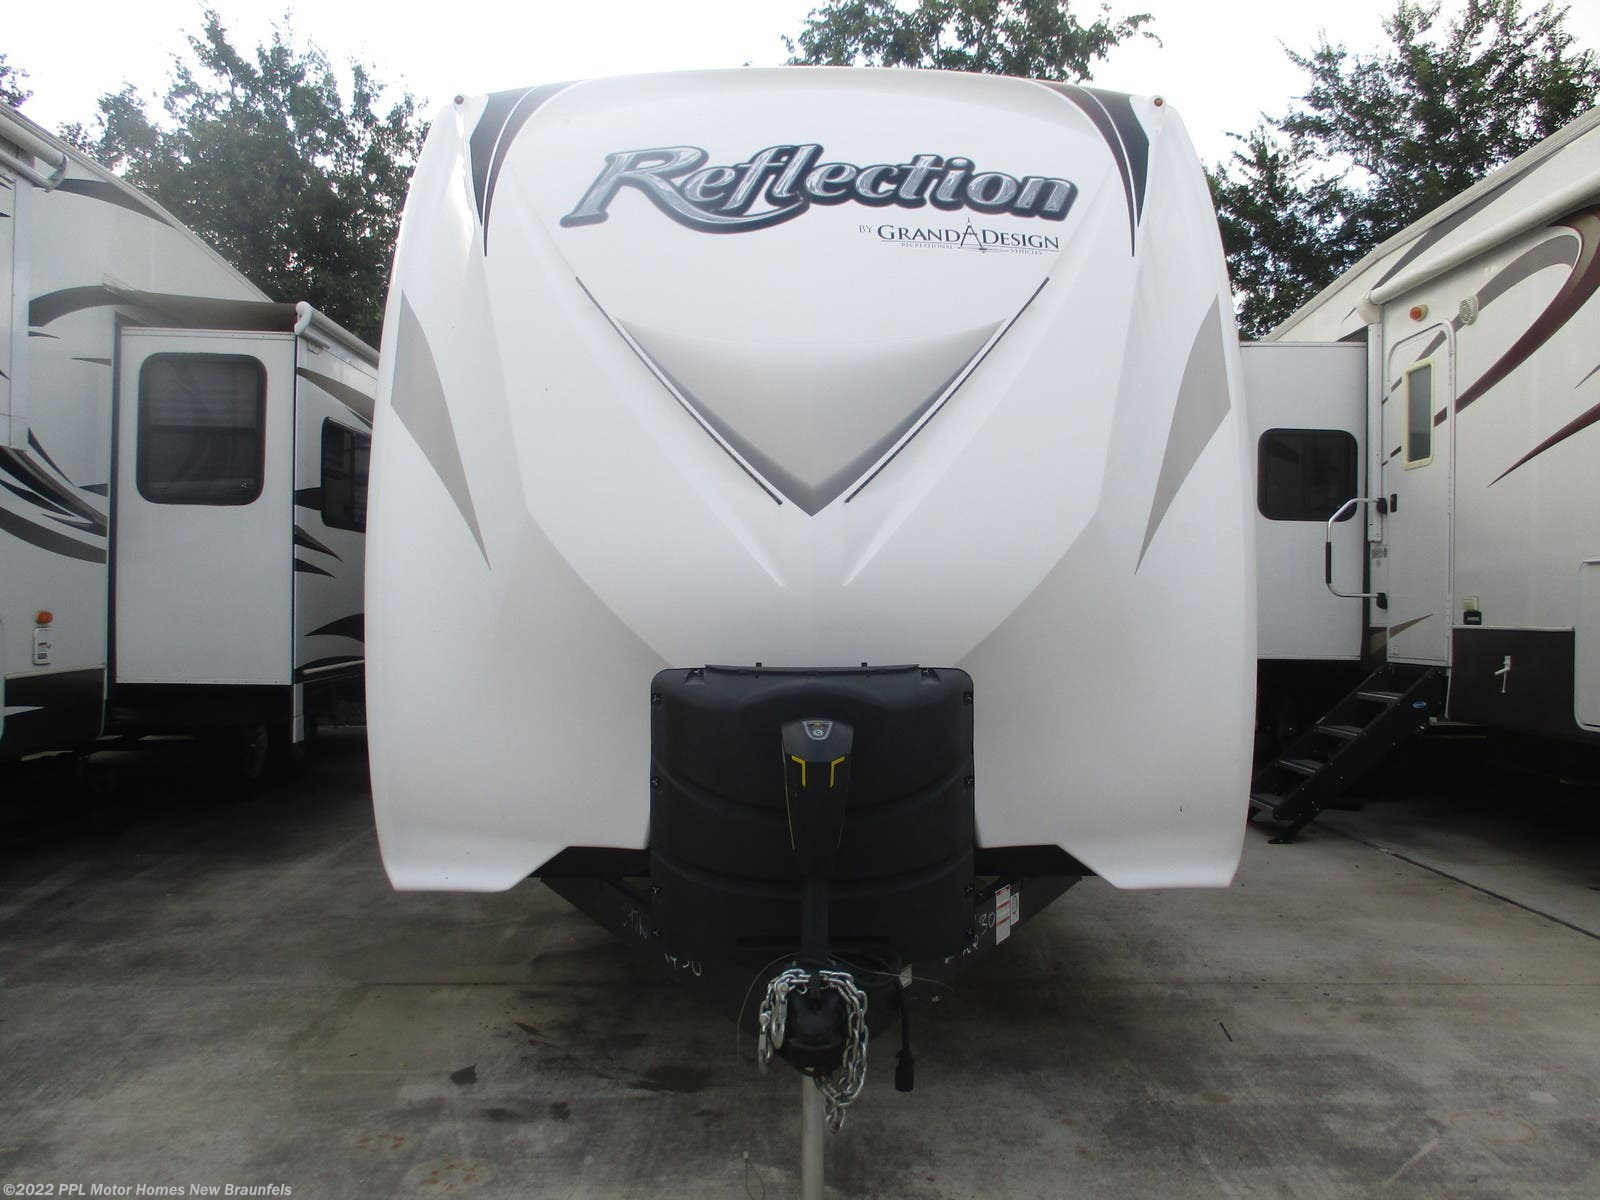 2017 Grand Design RV Reflection 297 for Sale in New Braunfels, TX 78130 |  T152NB